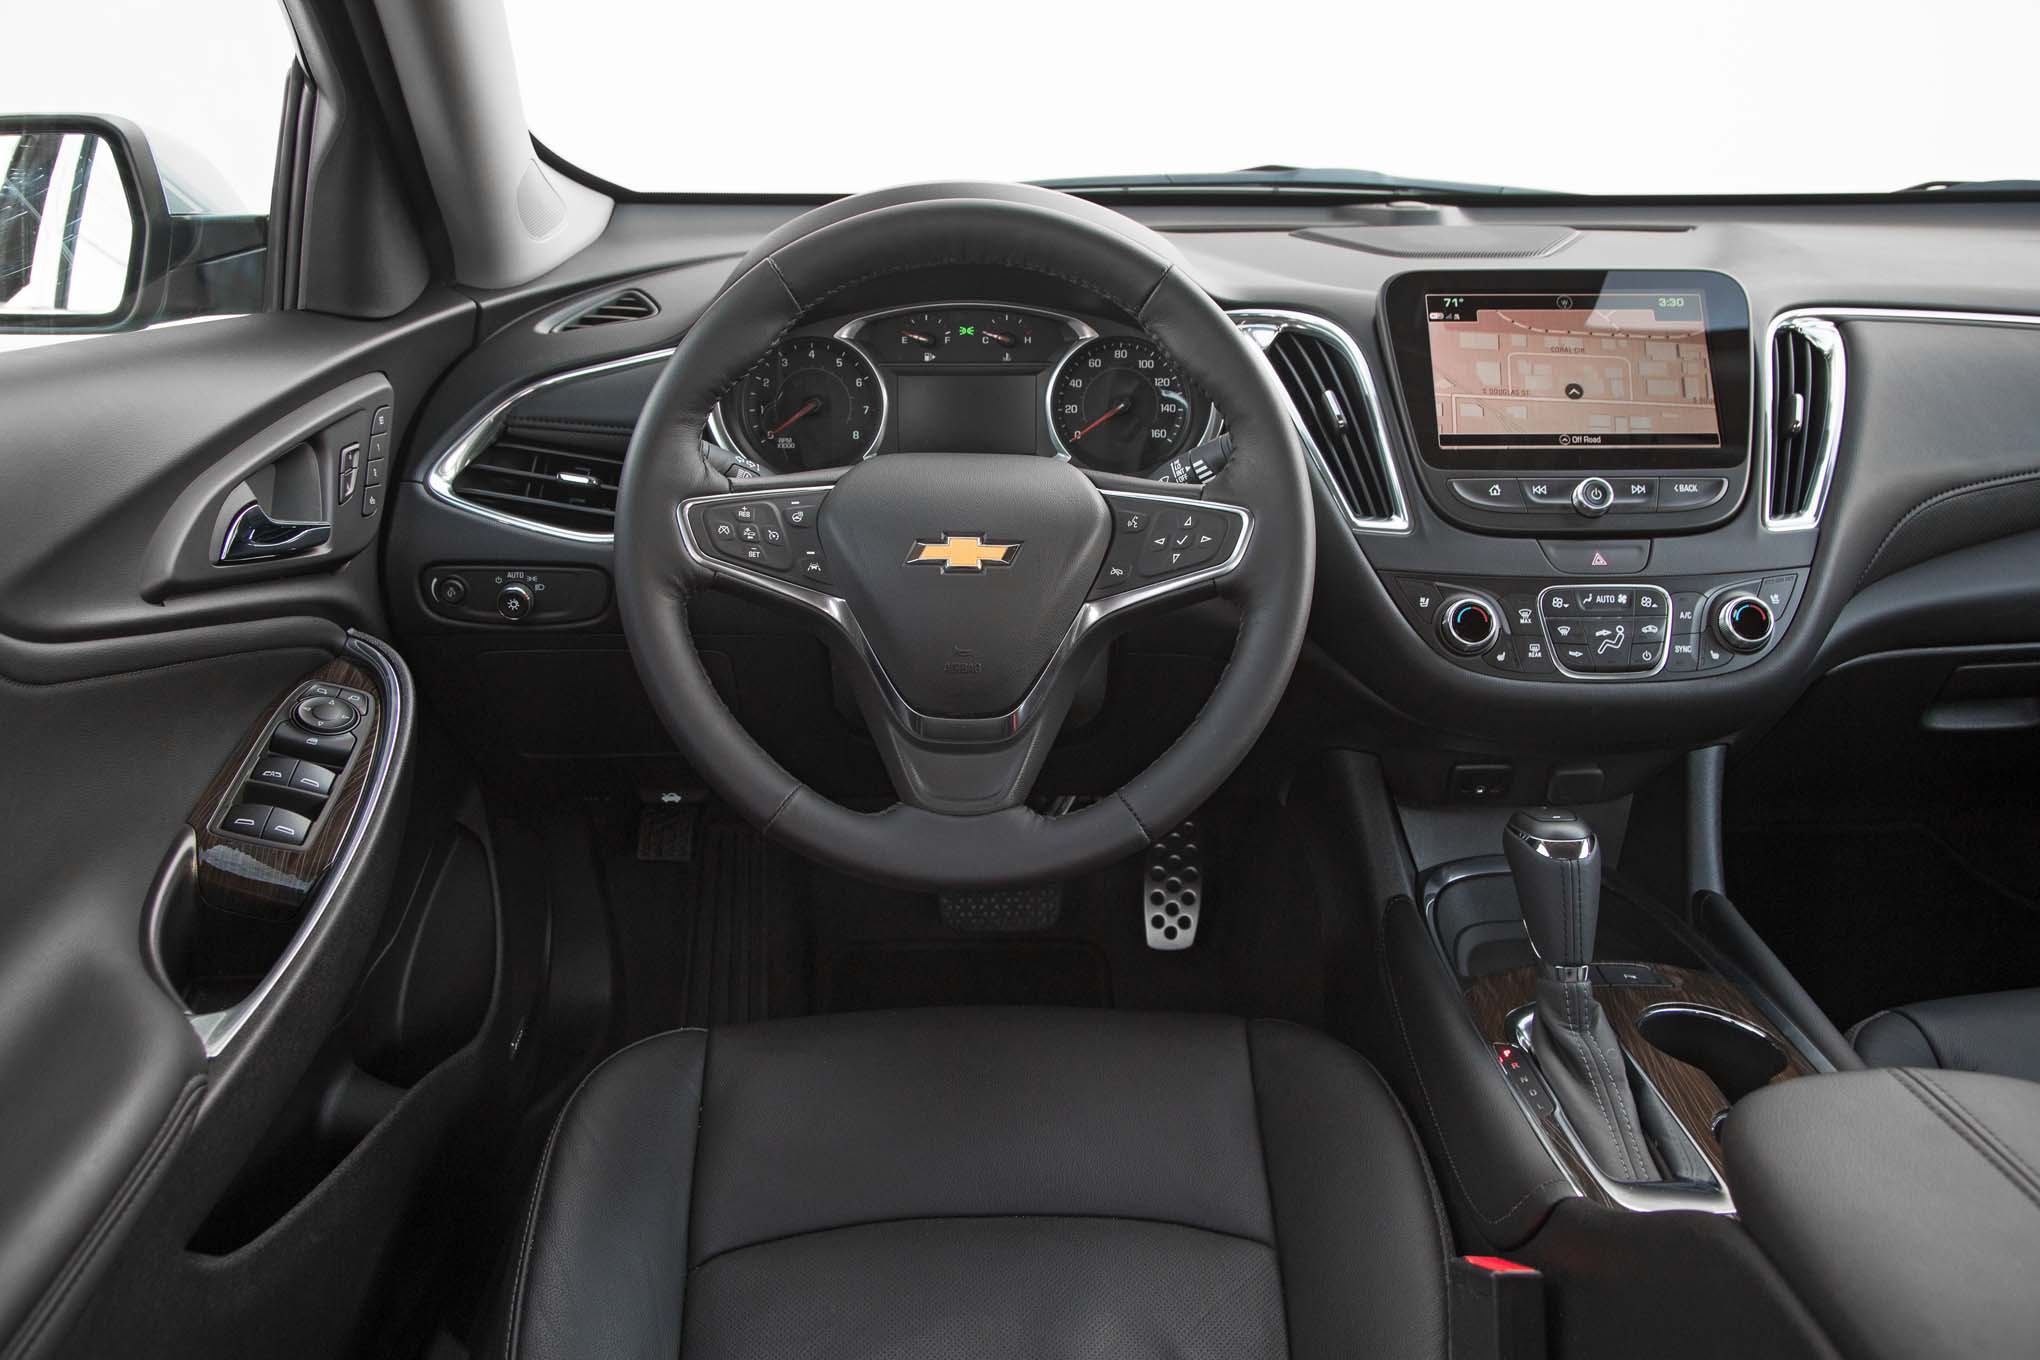 2017 chevrolet malibu 20t premier cockpit motor trend en espa ol. Black Bedroom Furniture Sets. Home Design Ideas